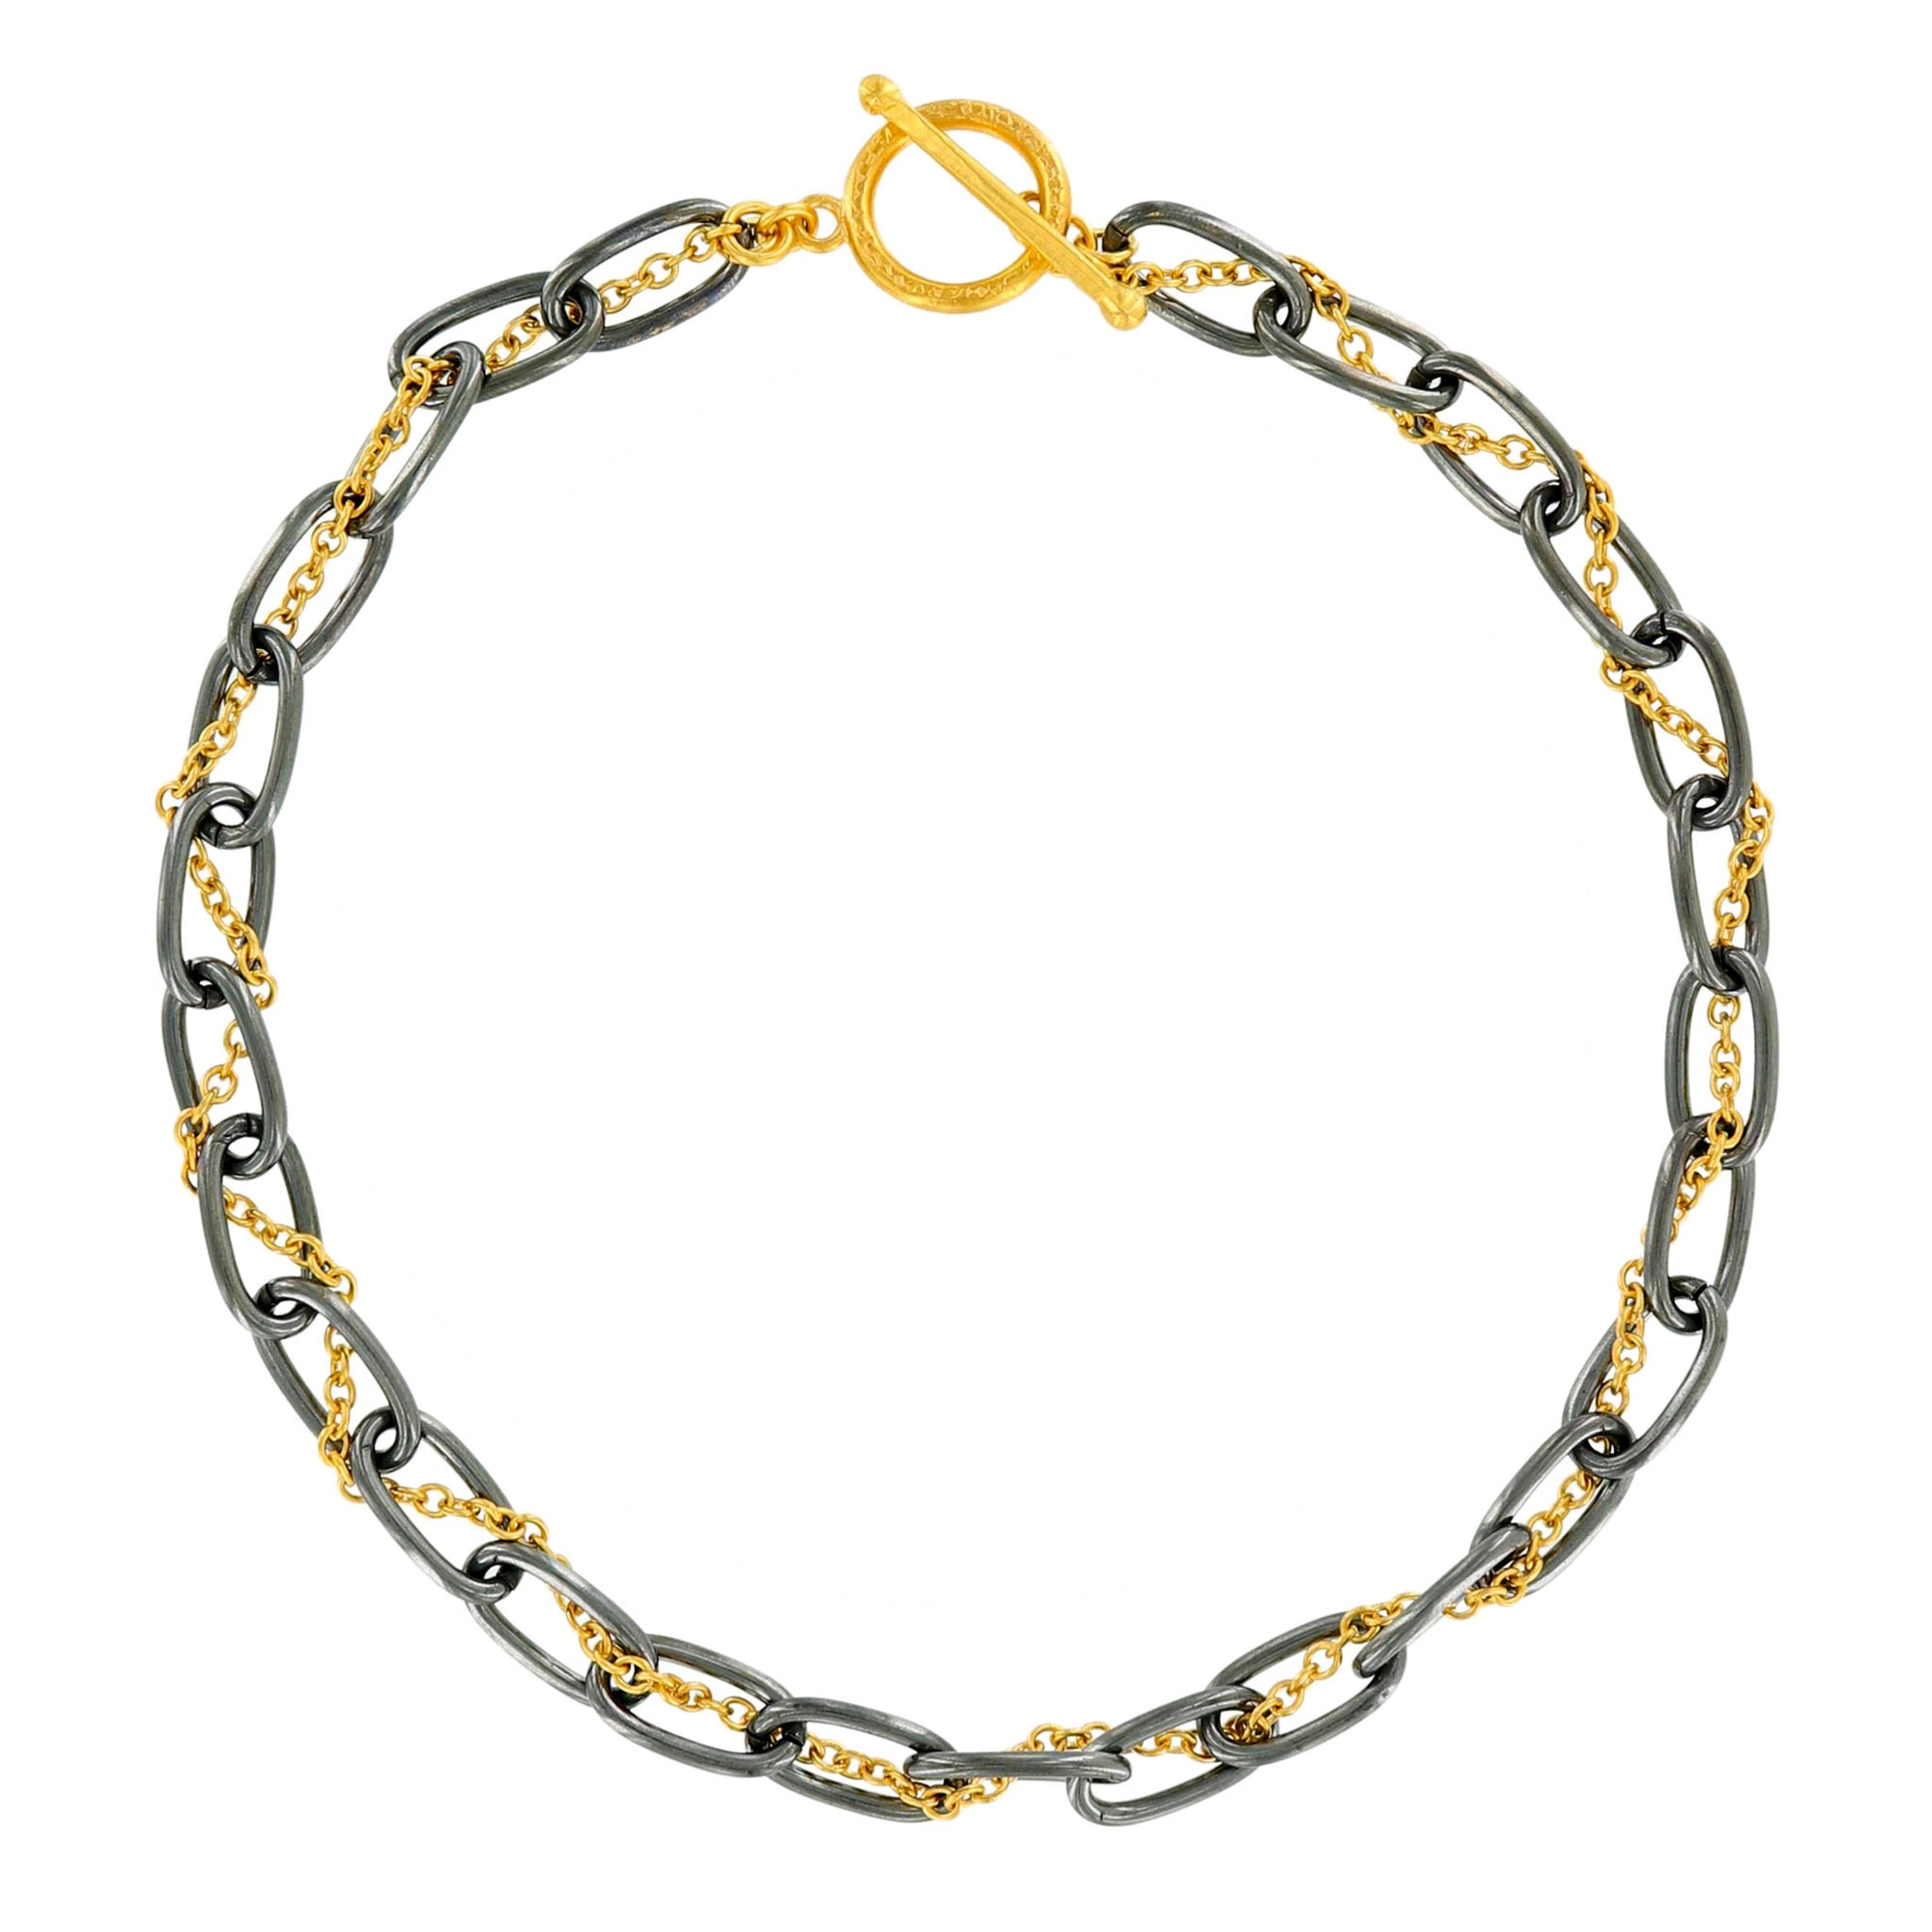 jewellery oval product maillon details gold diamond necklace collar cartier yellow link